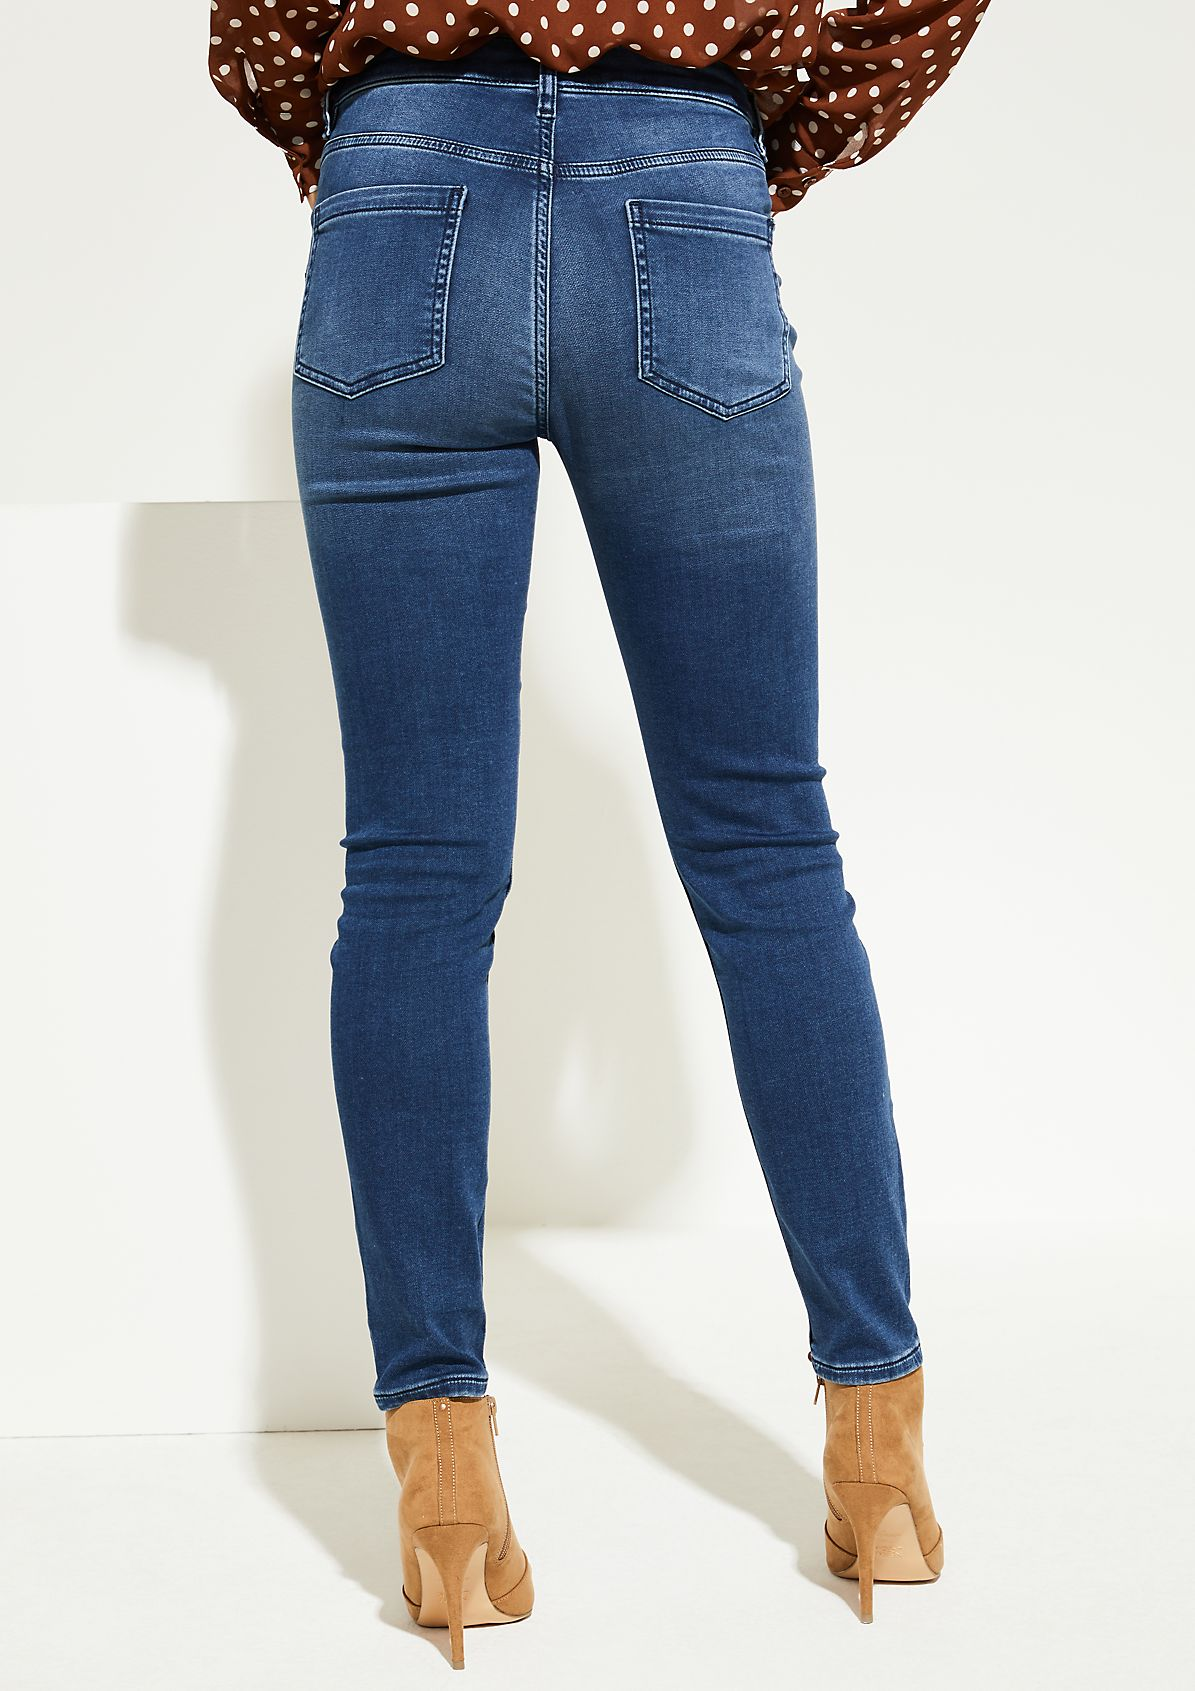 Jeans in a vintage finish with sparkly side stripes from comma